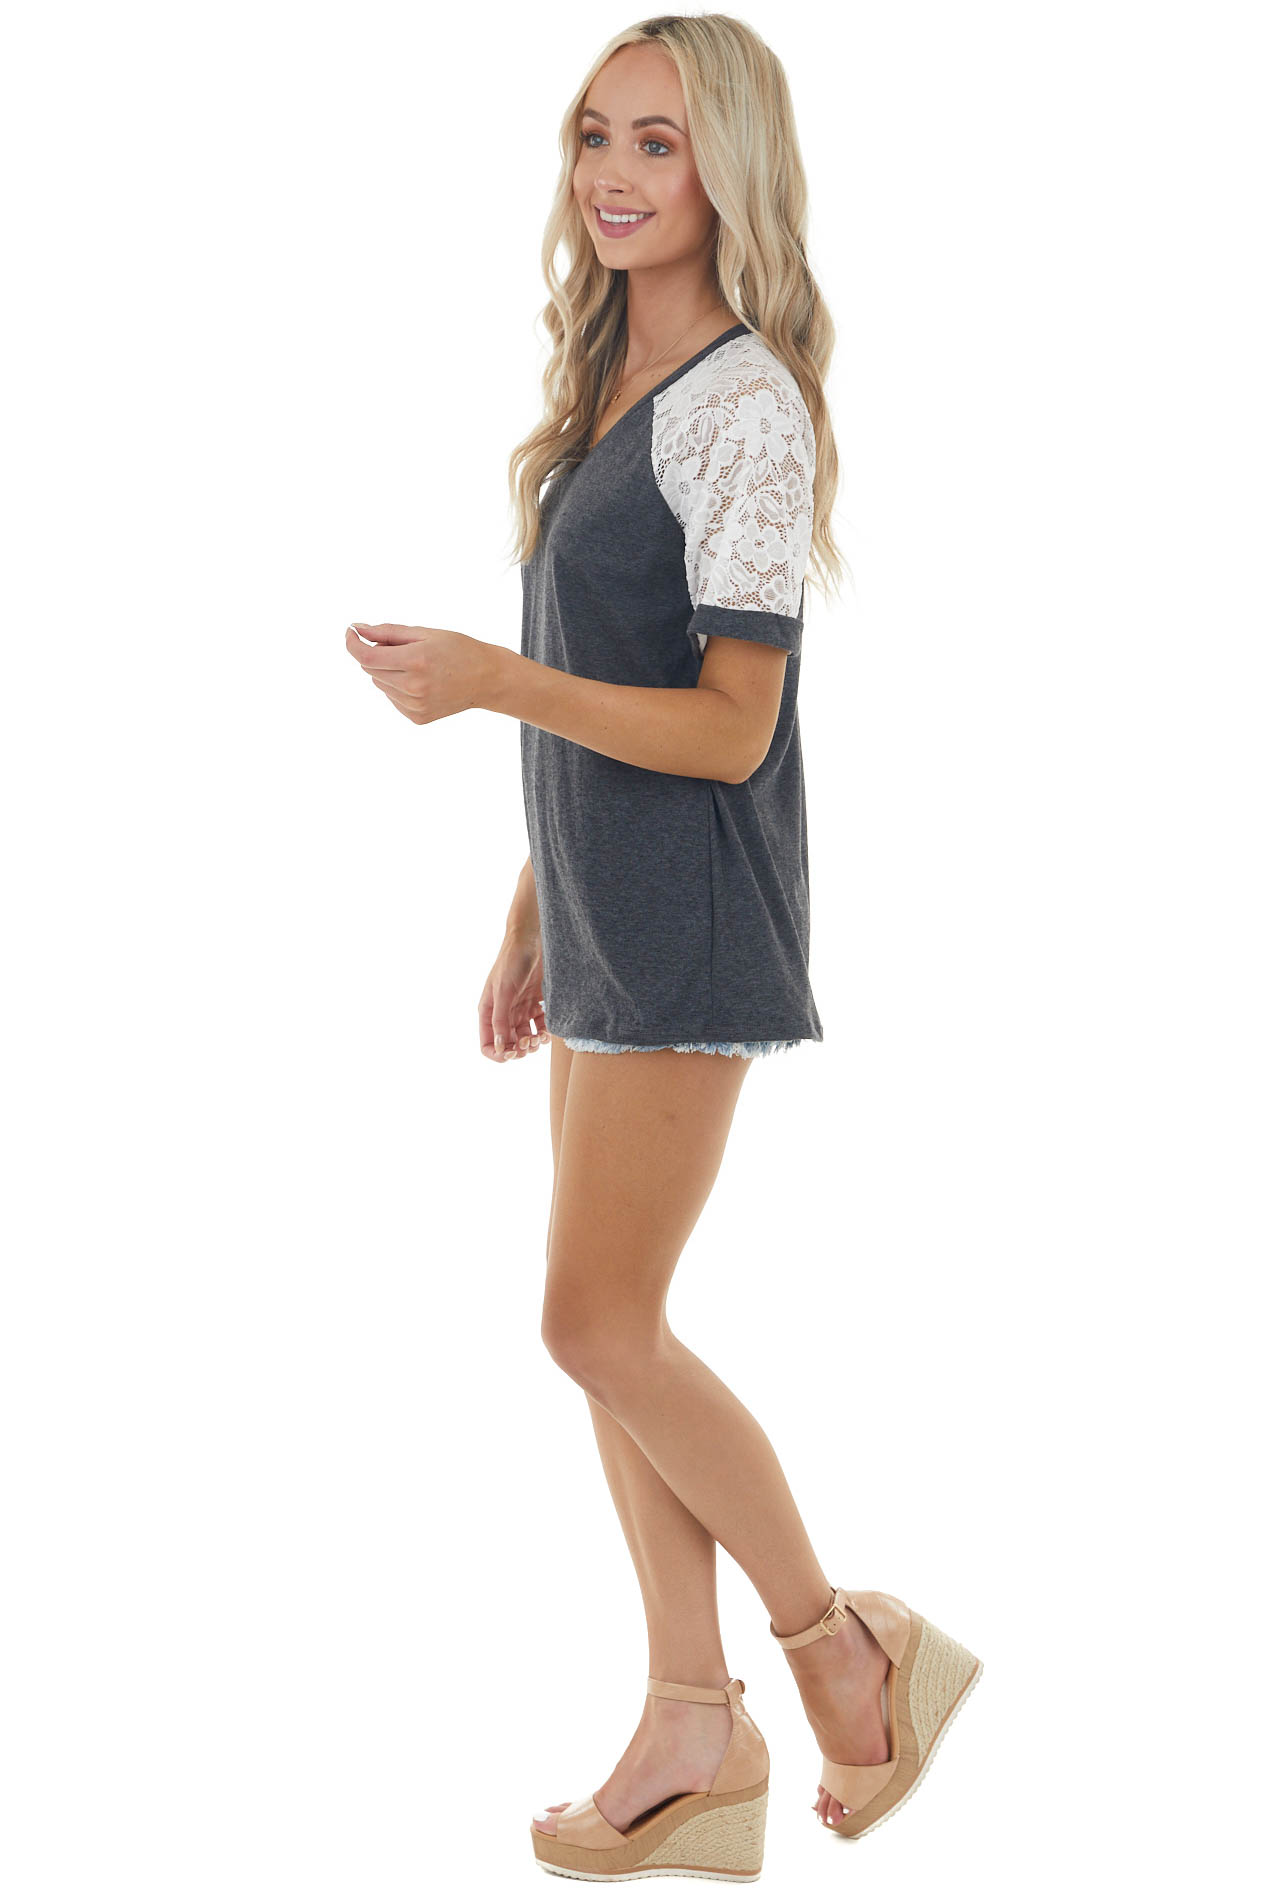 Heathered Charcoal V Neck Tee with Crochet Lace Short Sleeve